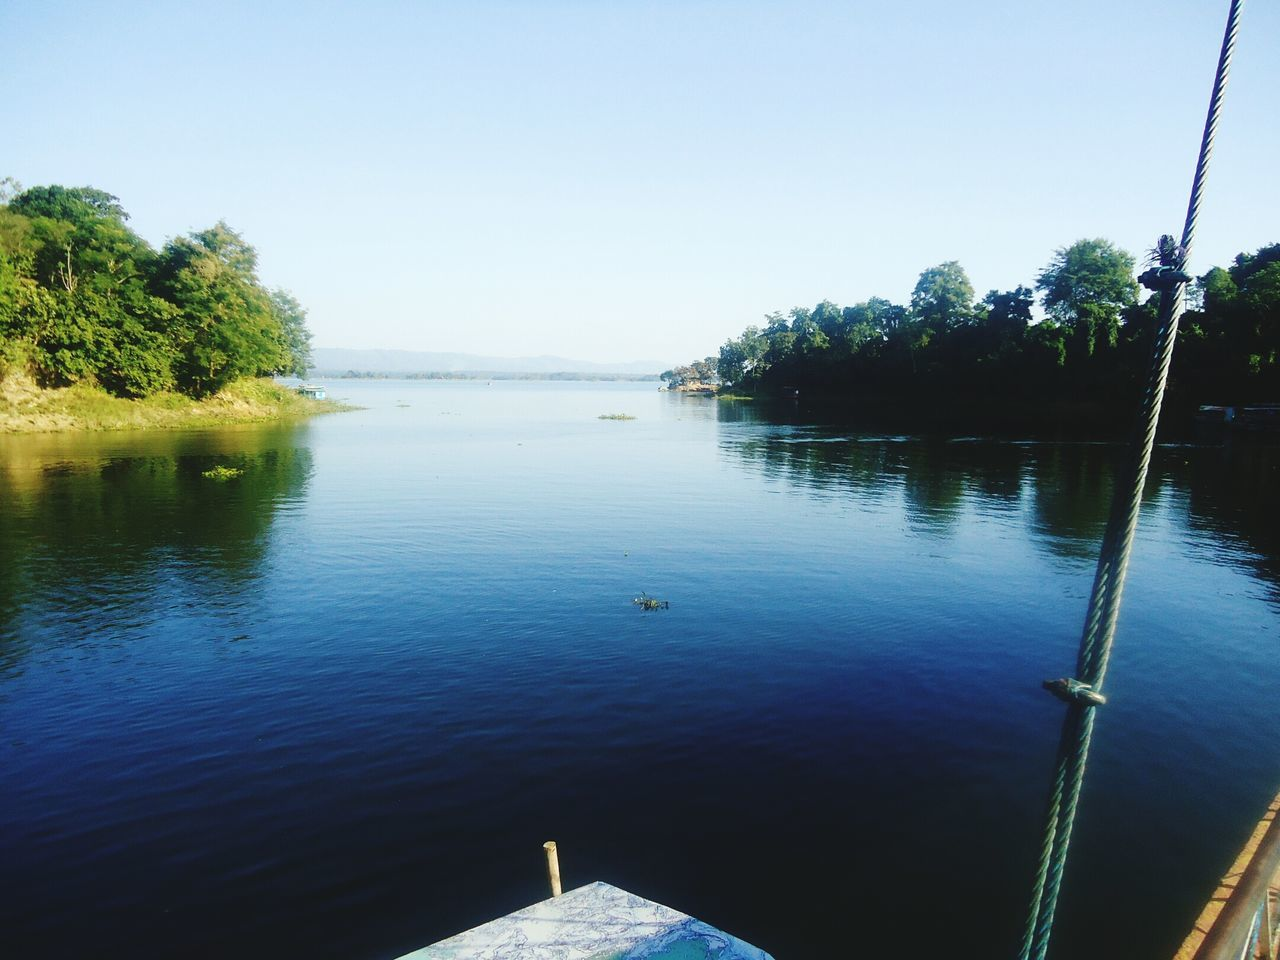 water, tree, nature, no people, river, tranquility, tranquil scene, outdoors, beauty in nature, day, clear sky, scenics, sky